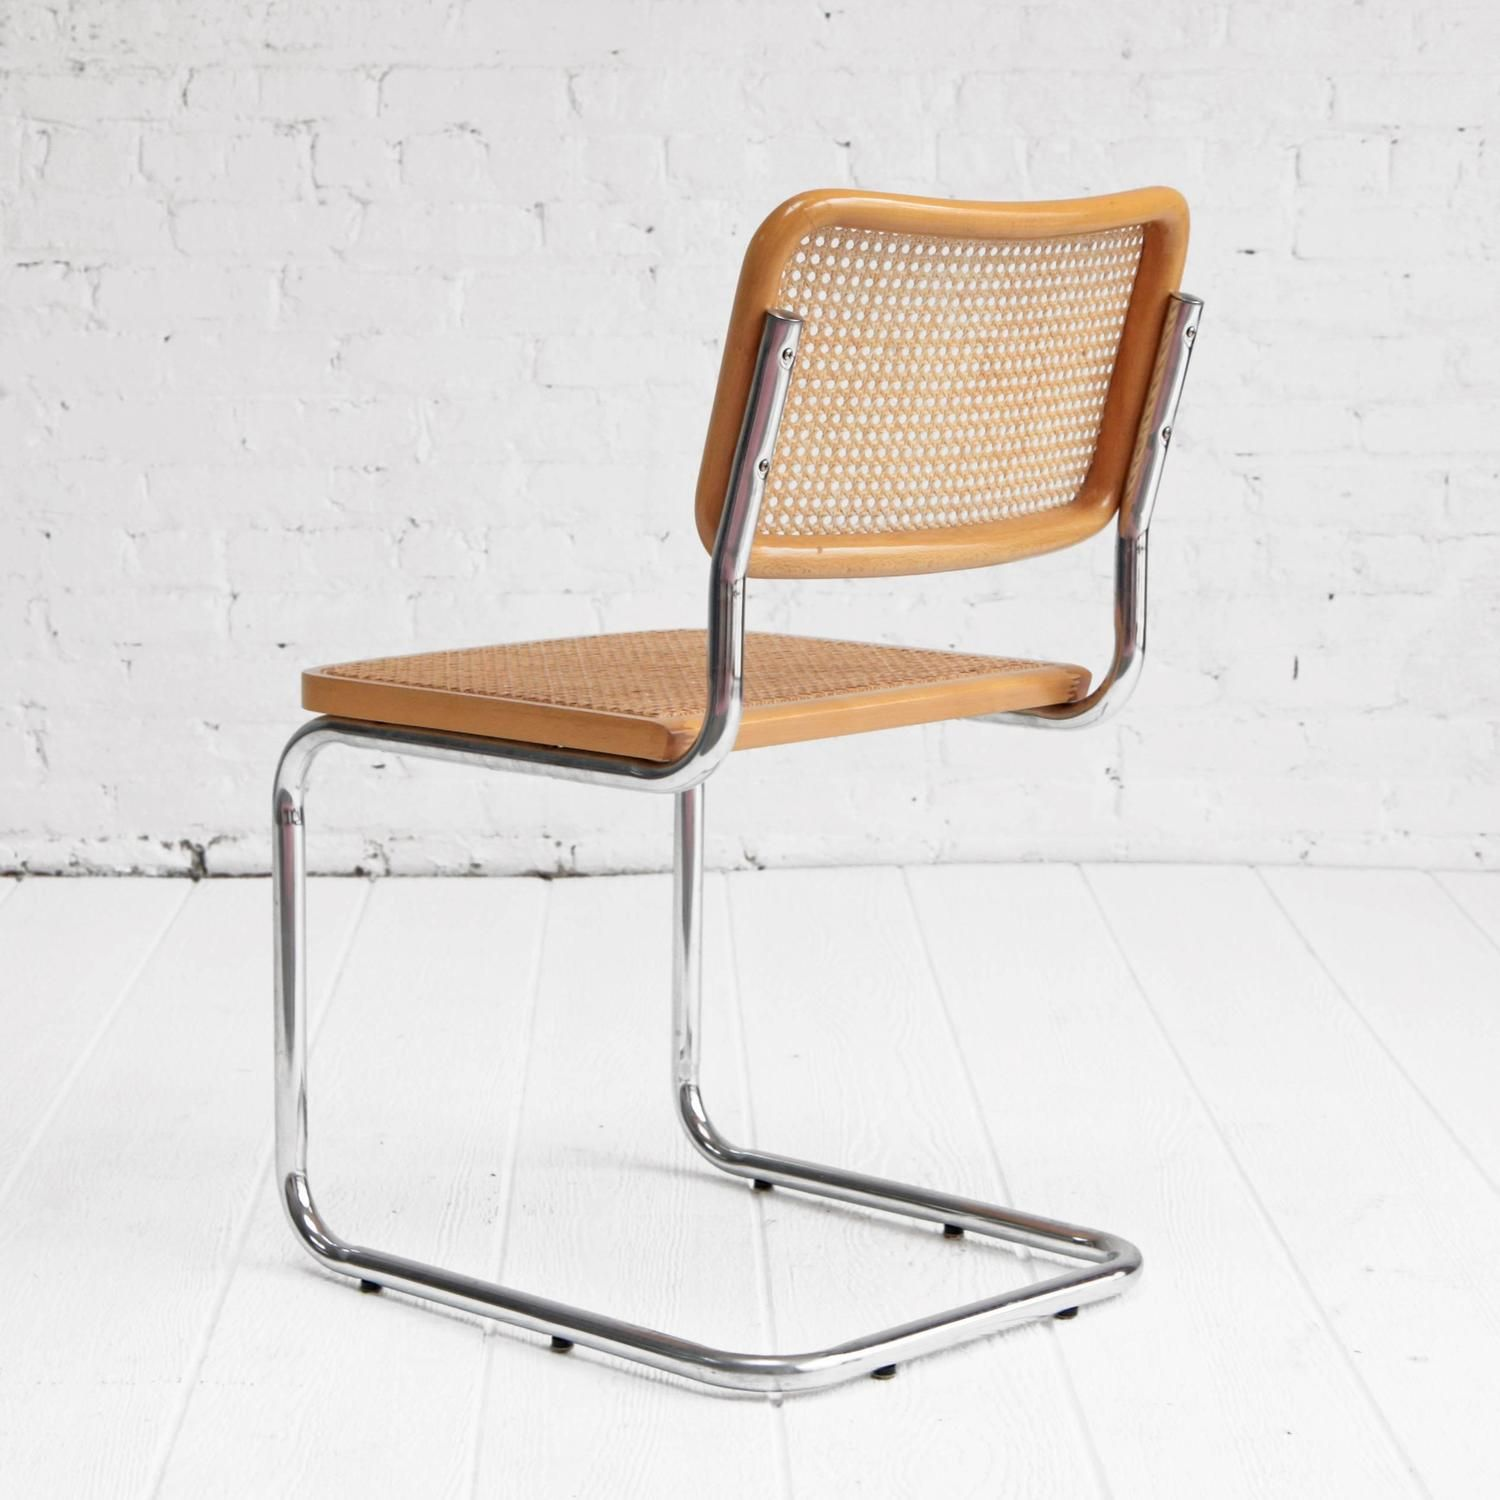 Marcel Breuer Cesca Chairs Chrome and Cane Dining Chairs